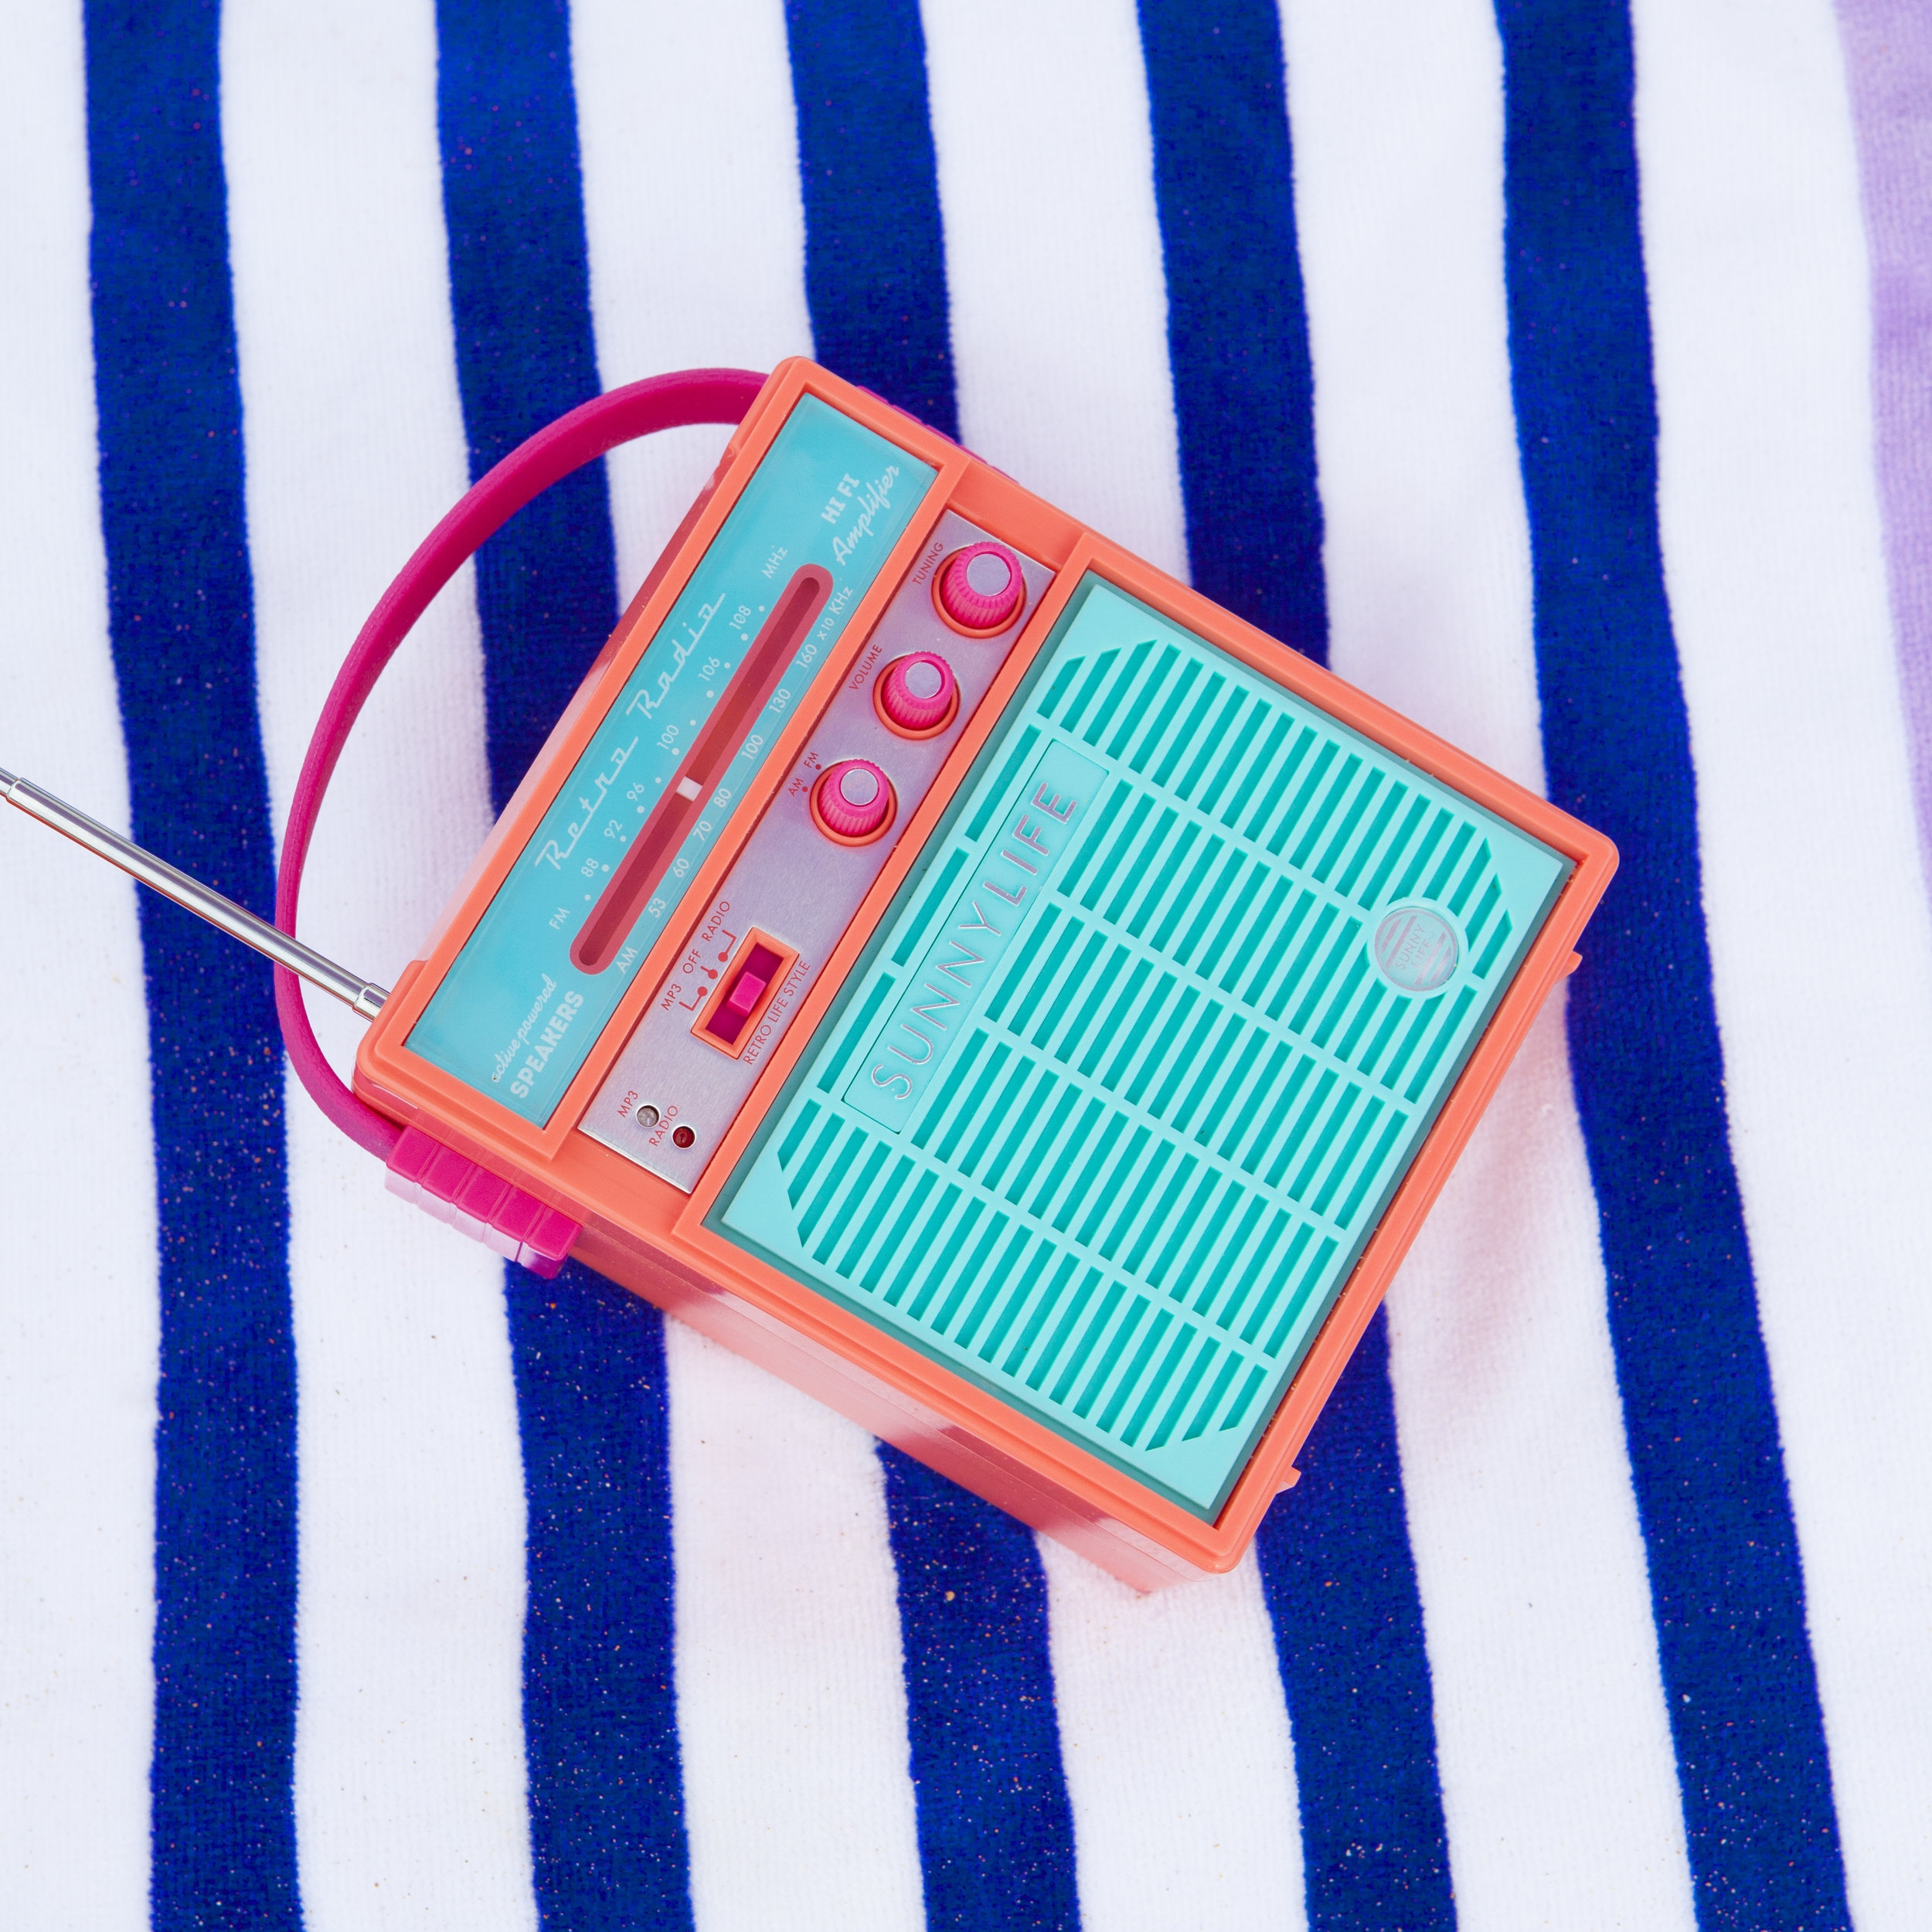 Water & Sand Resistant Retro Radios   Two important beach/pool day rules; 1.)   good music and 2.)a functional phone. These cute and colorful retro radios are water and sand resistant so you can listen to your summer playlist and still text plans later.